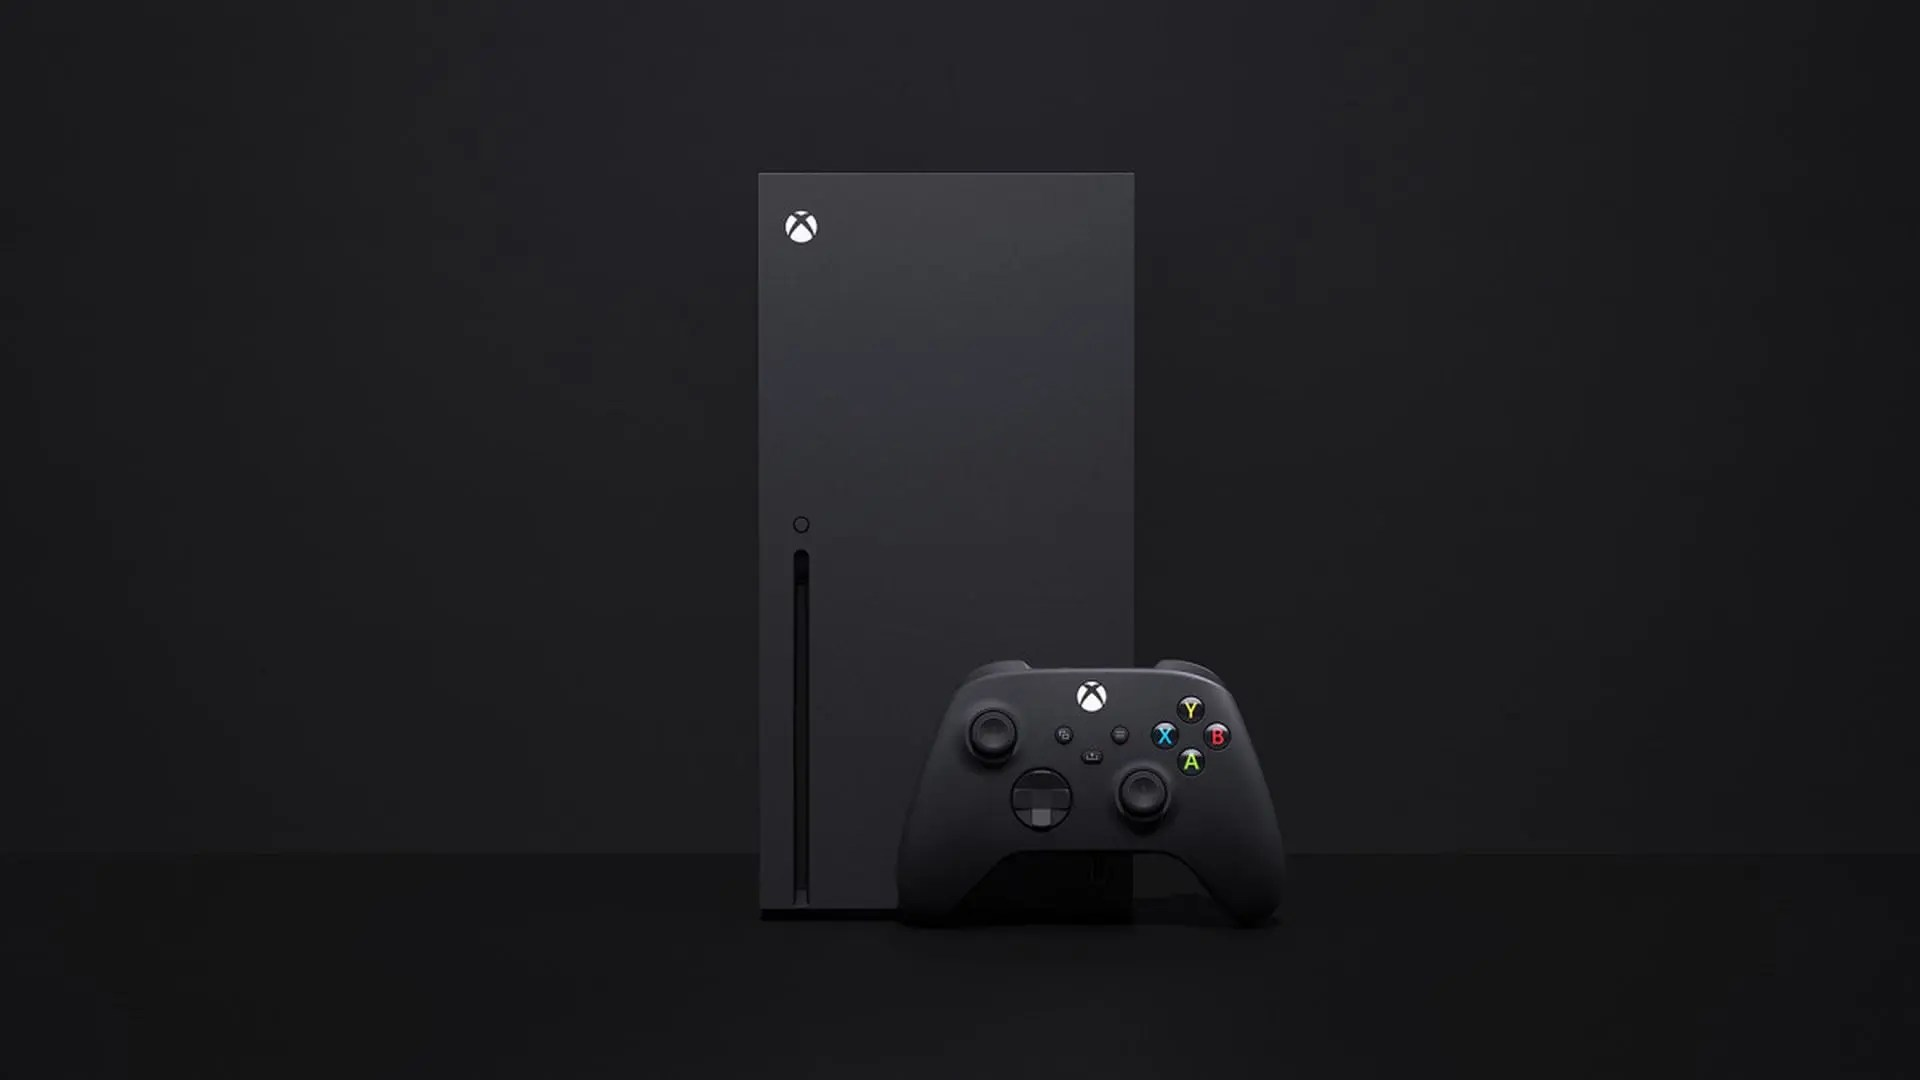 Pre-orders for Xbox Series X are sold within minutes